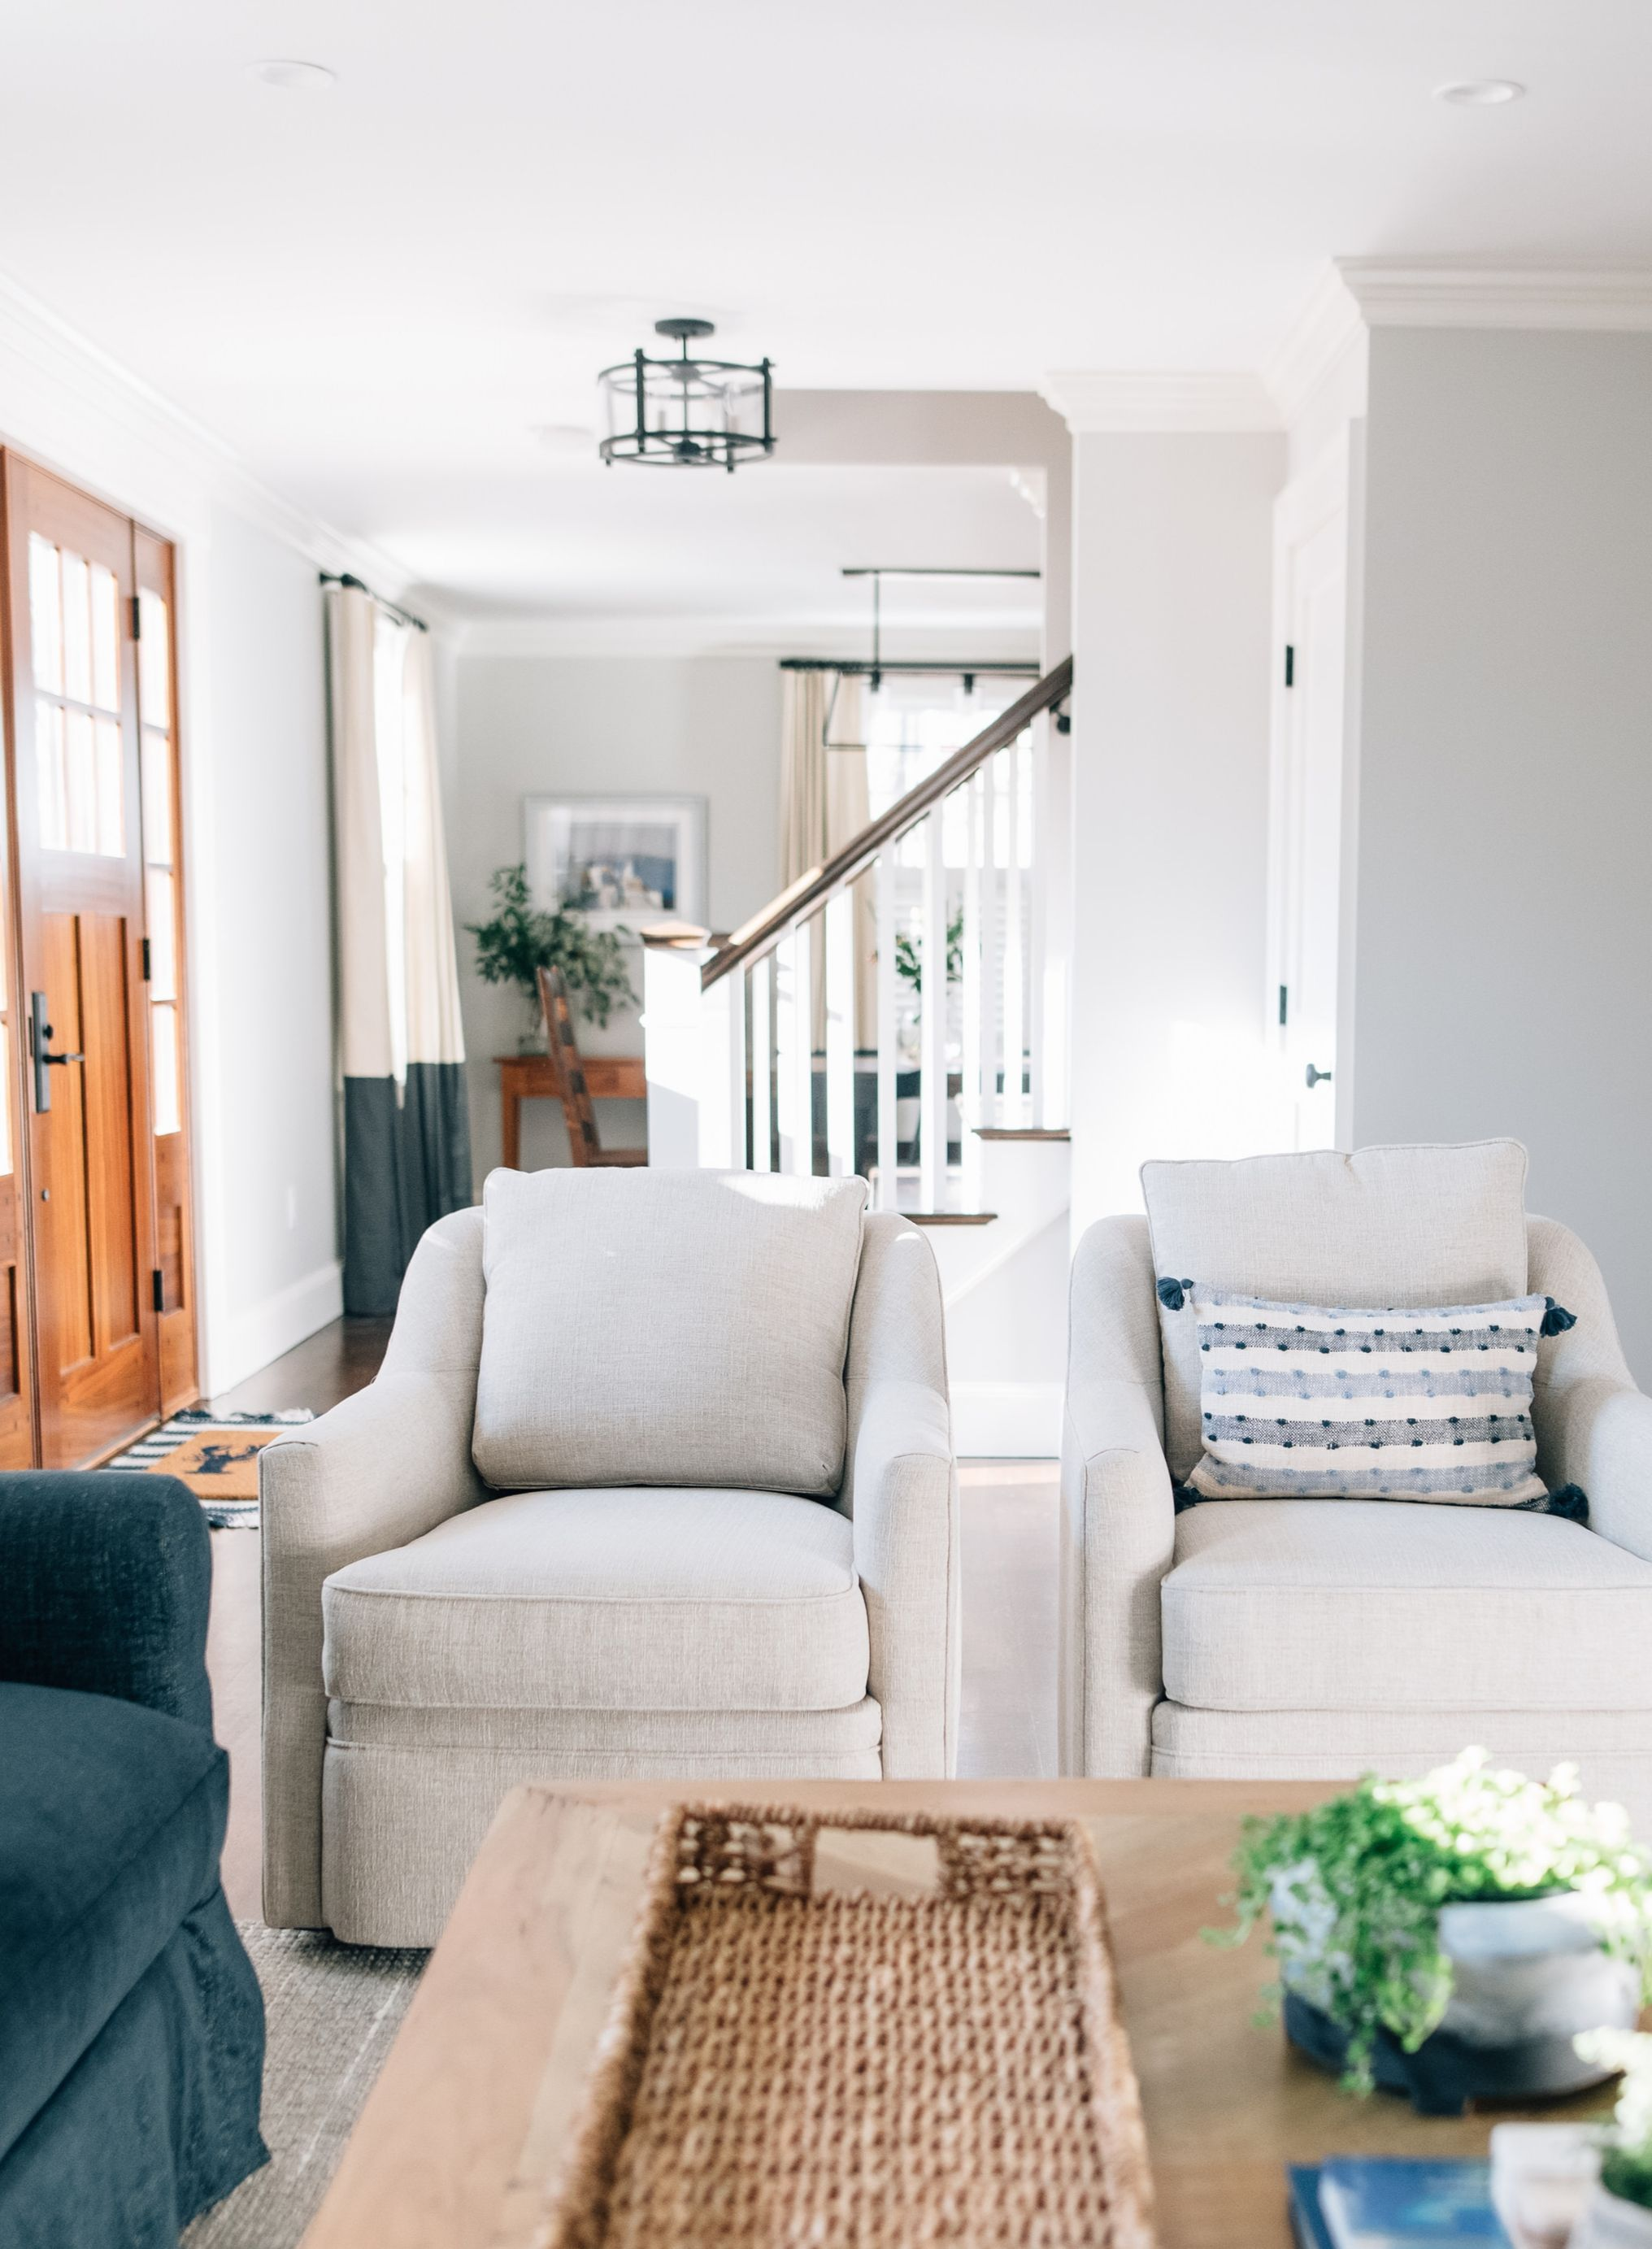 Living Room With Ivory Cream Off White Swivel Chairs And Blue Sofa And Long Rustic Reclaimed Table In 2020 White Swivel Chairs Grey Oak Reclaimed Table